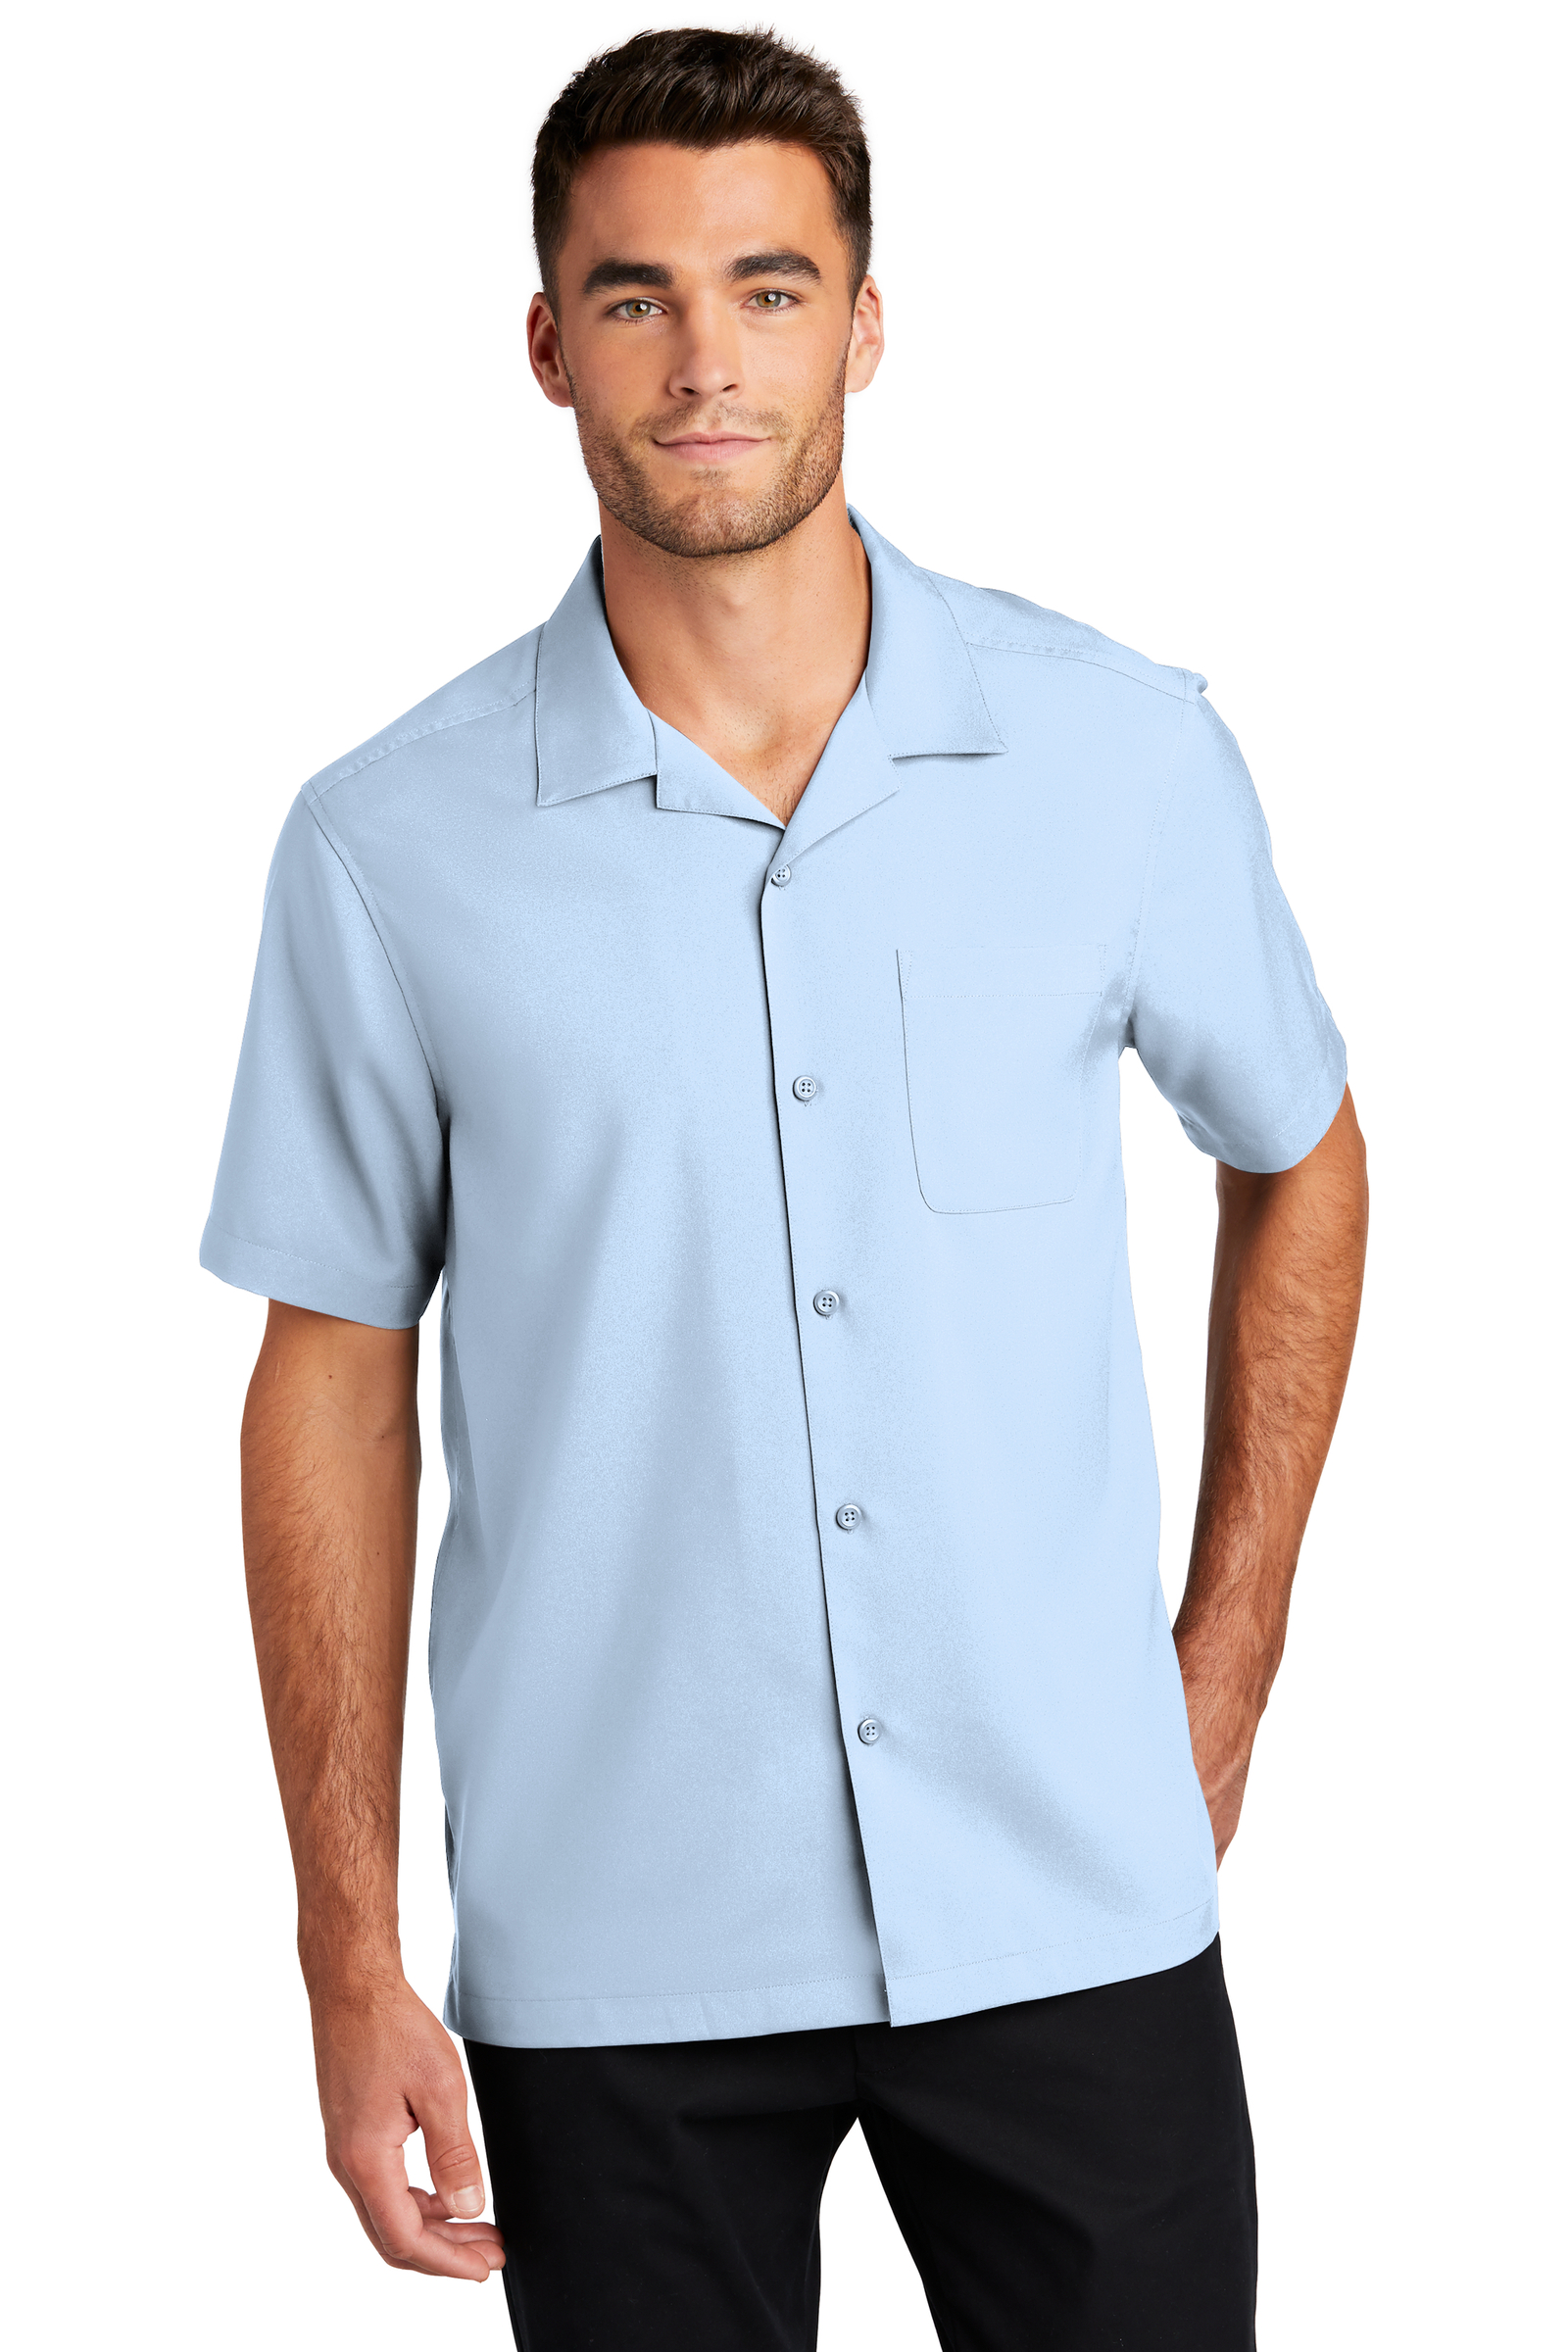 Port Authority Embroidered Men's Short Sleeve Performance Staff Shirt